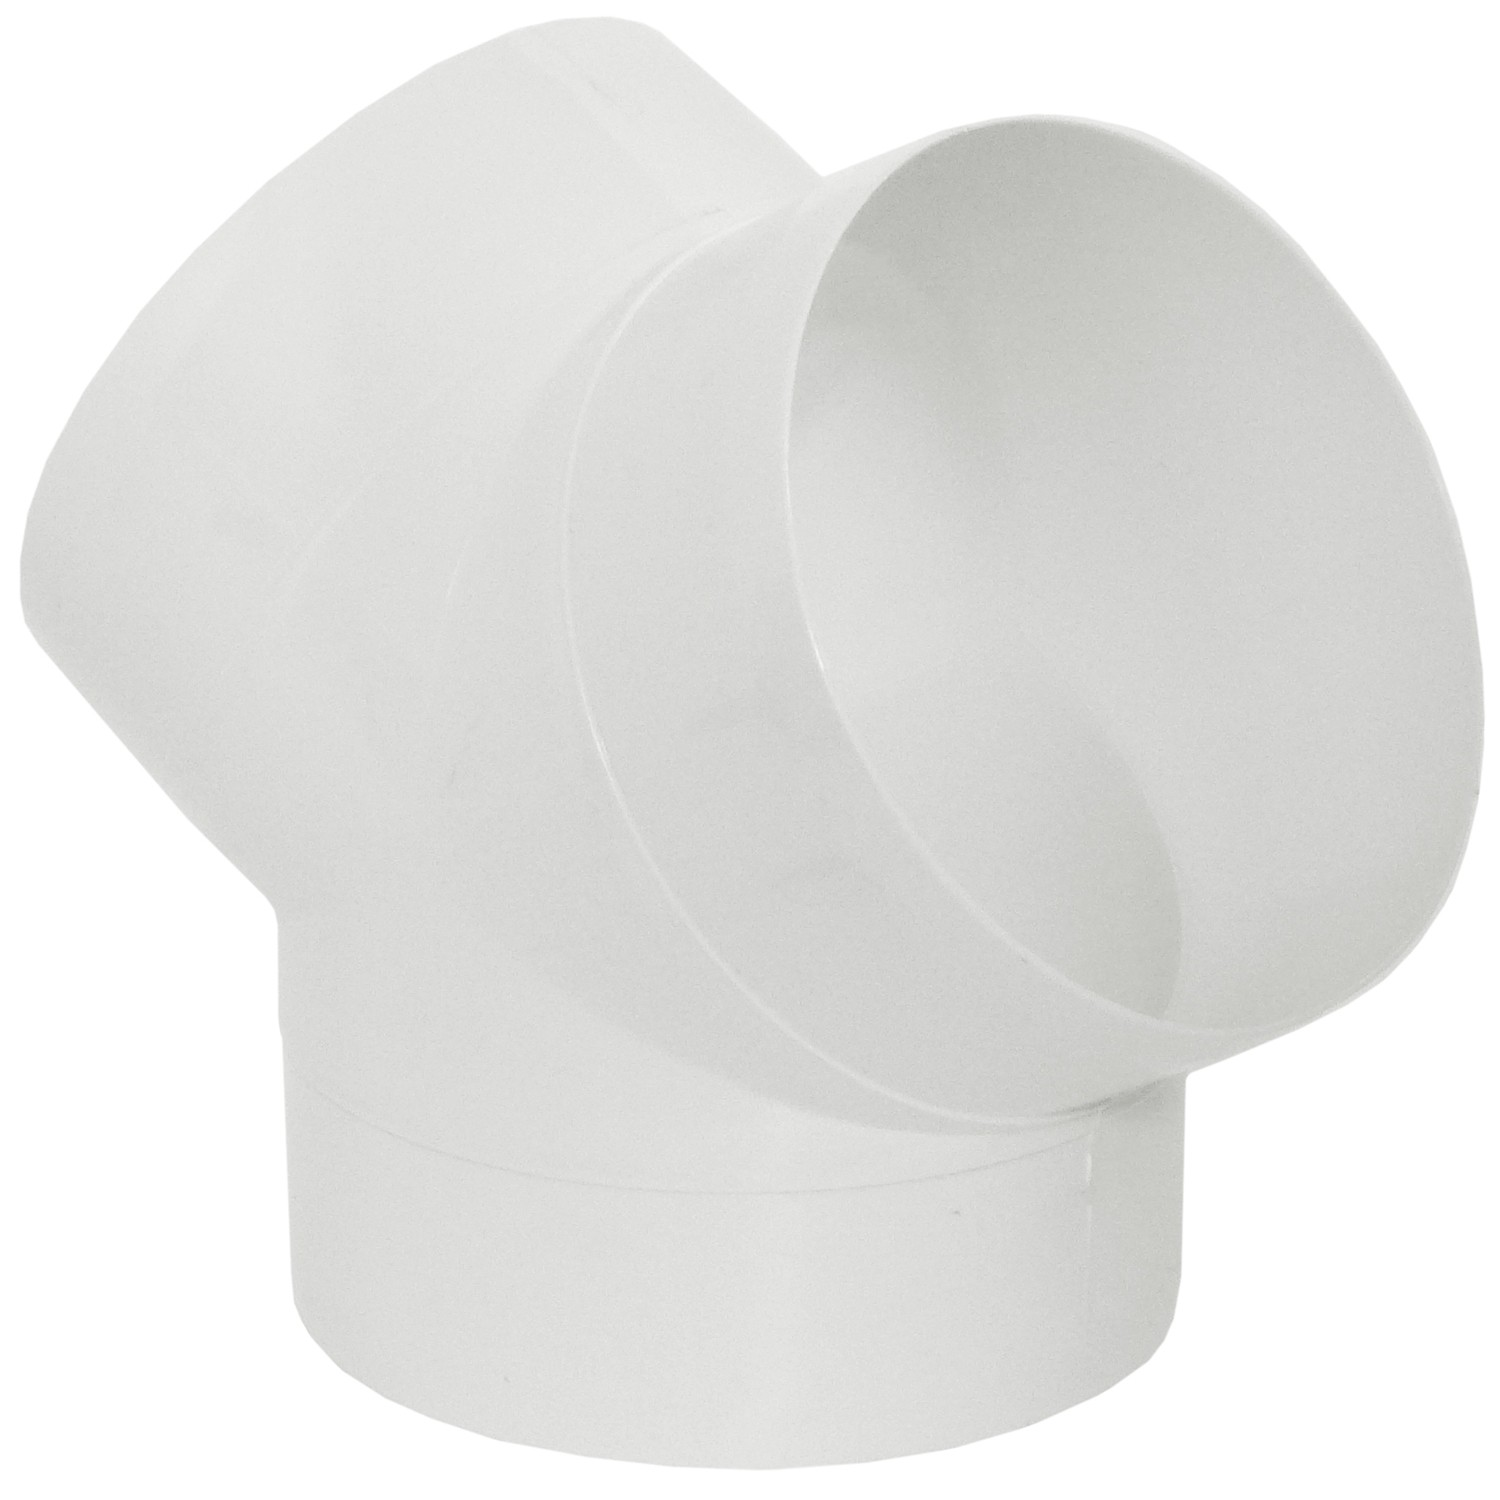 Manrose Round Ducting Pipe Y Piece - White, 120mm